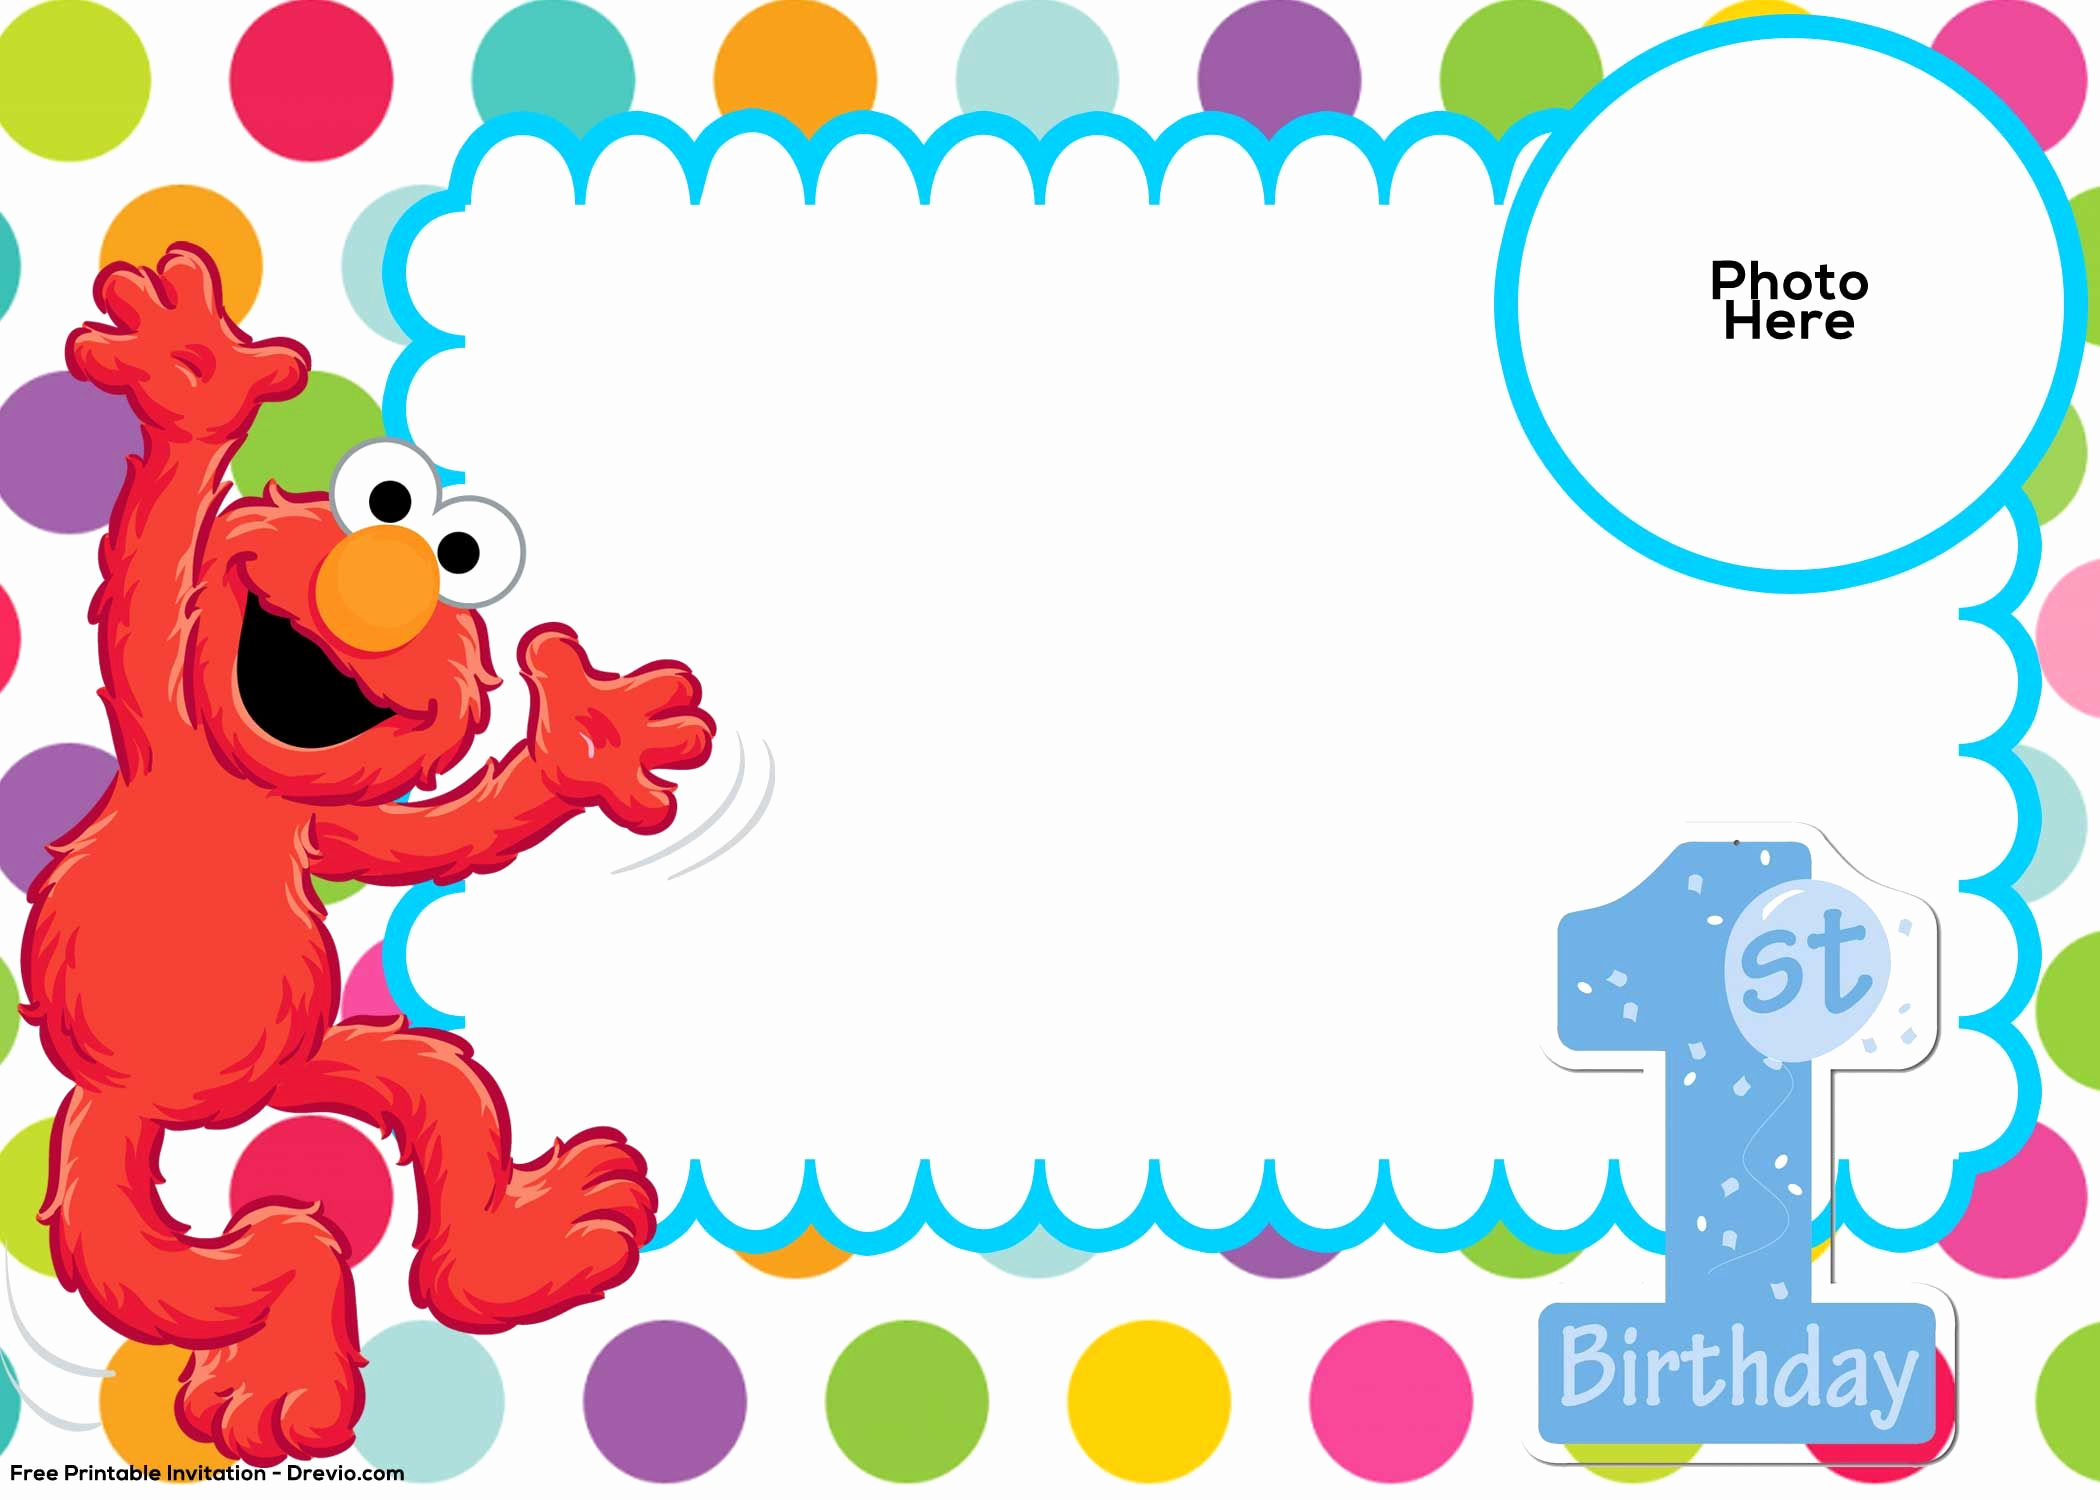 Sesame Street Invitation Template Free Luxury Free Sesame Street 1st Birthday Invitation Template